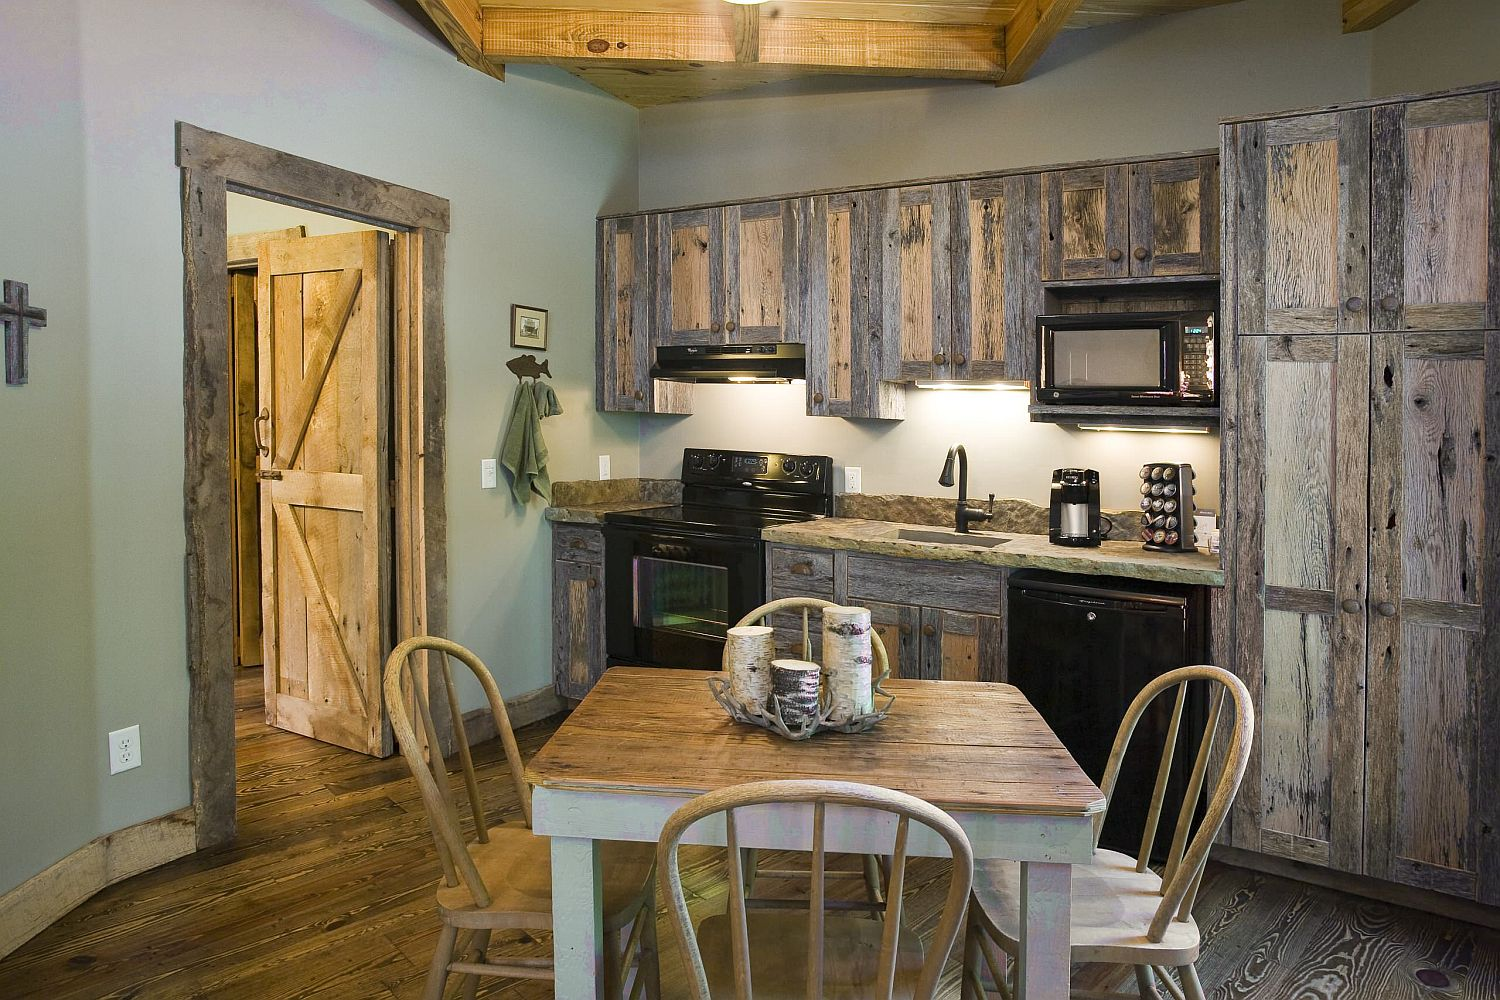 Brilliant blend of reclaimed wood and black in the farmhouse style kitchen